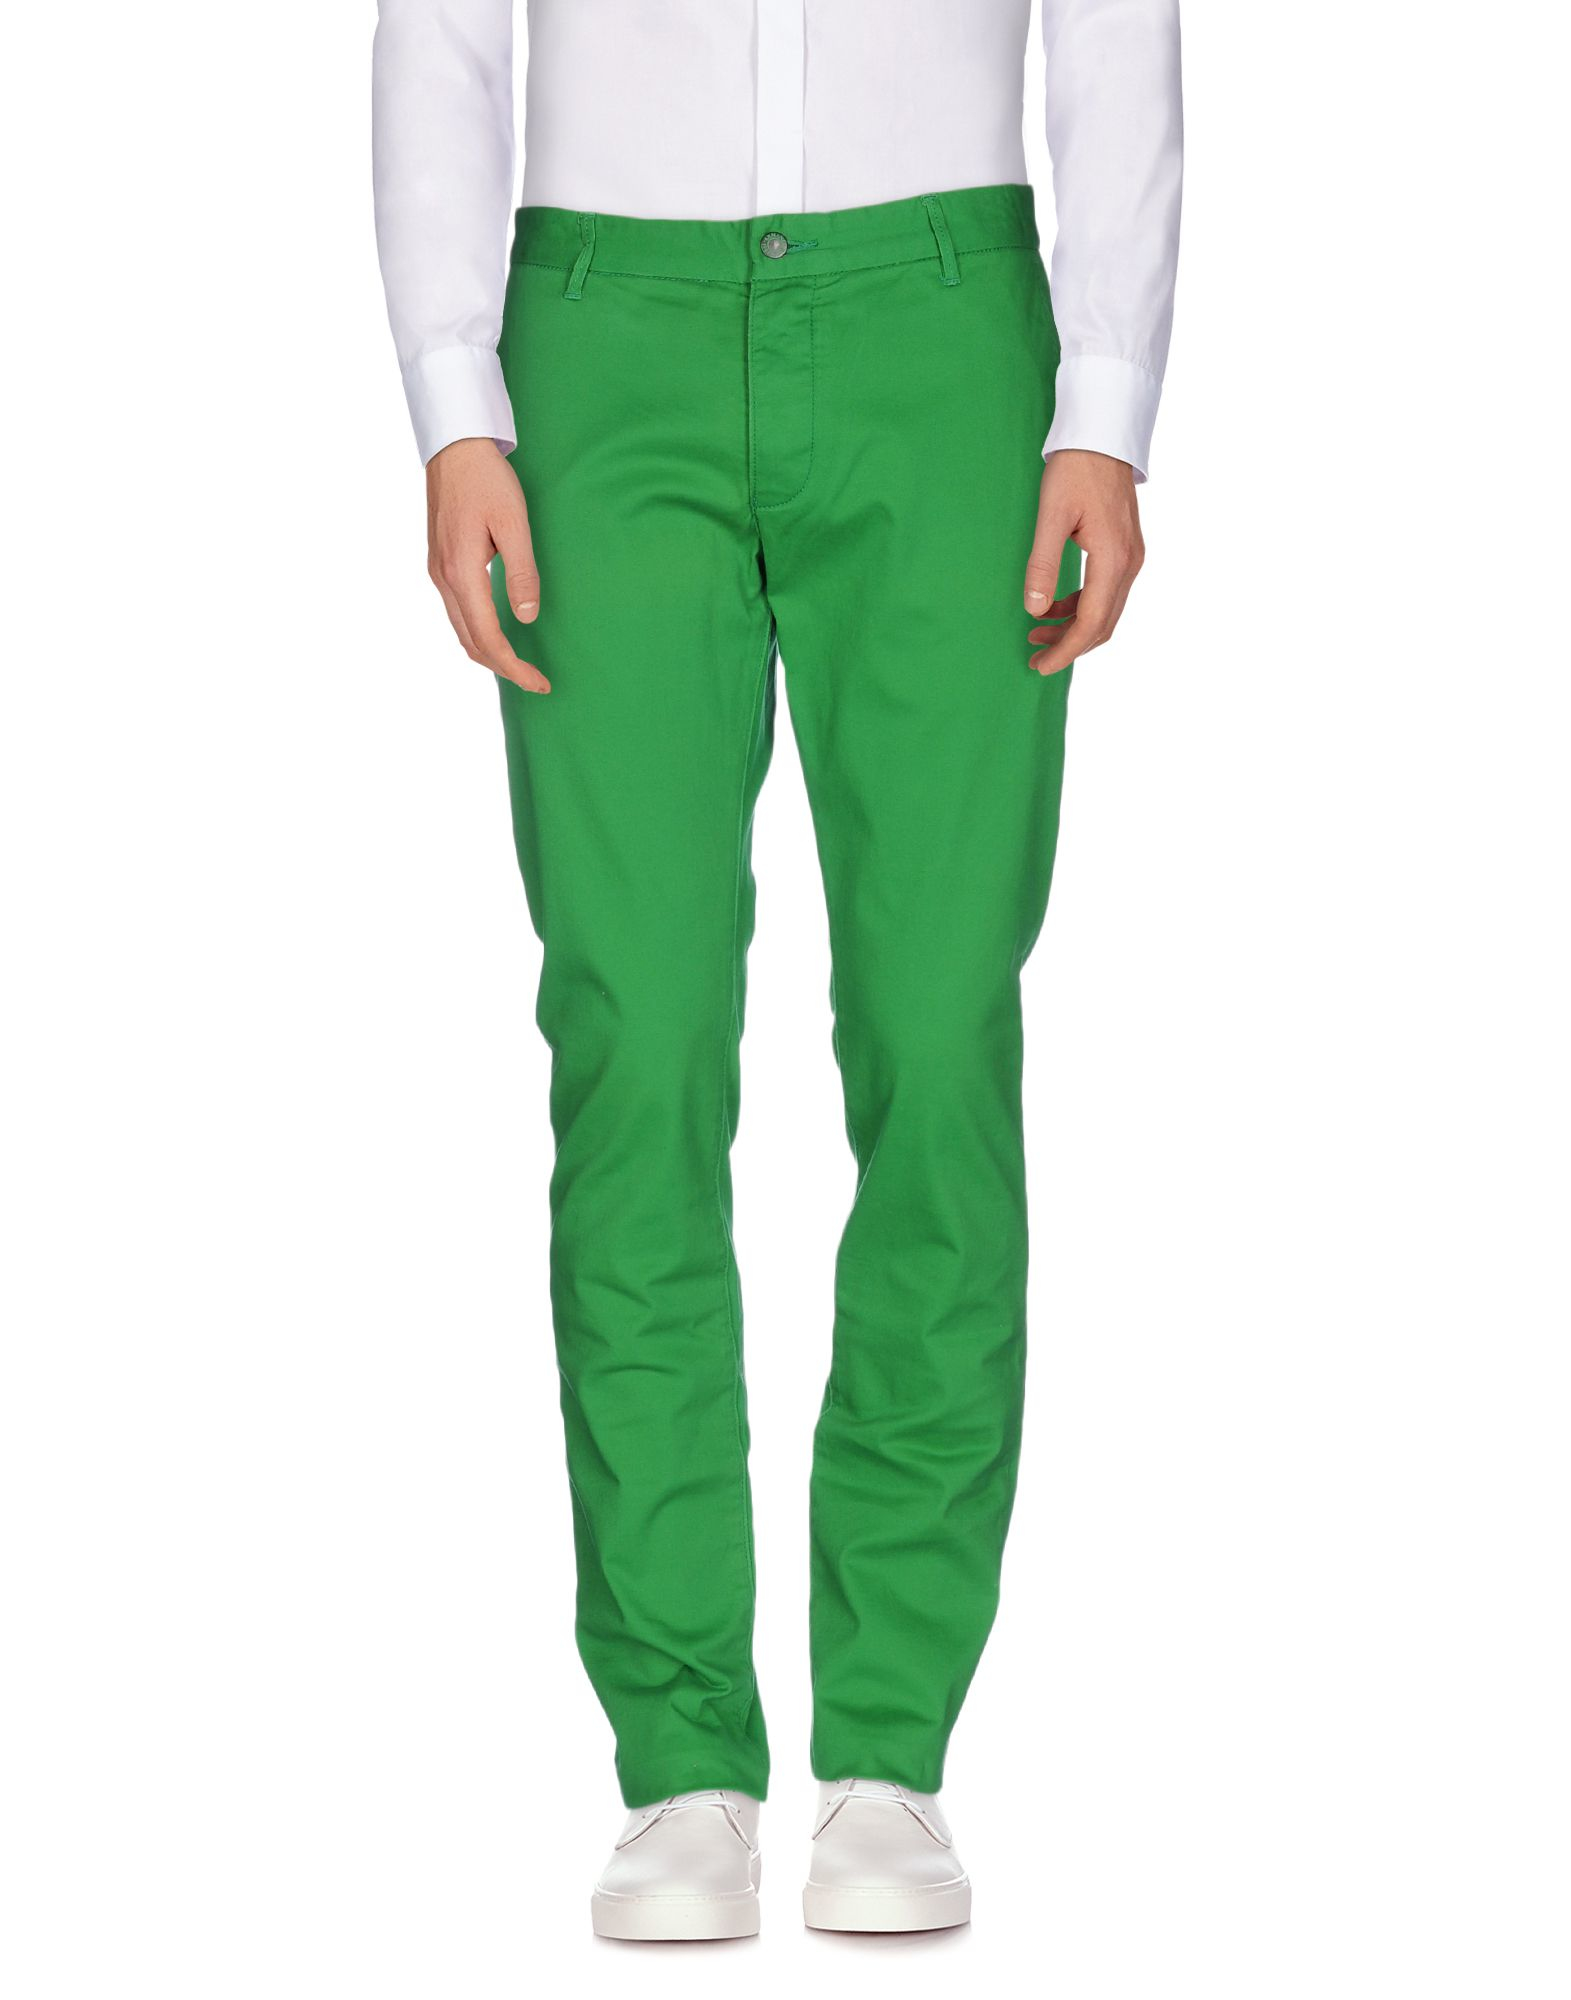 Buy Green Bay Packers Pants at russia-youtube.tk! Browse all the latest sweatpants and merchandise at the official store of the NFL.